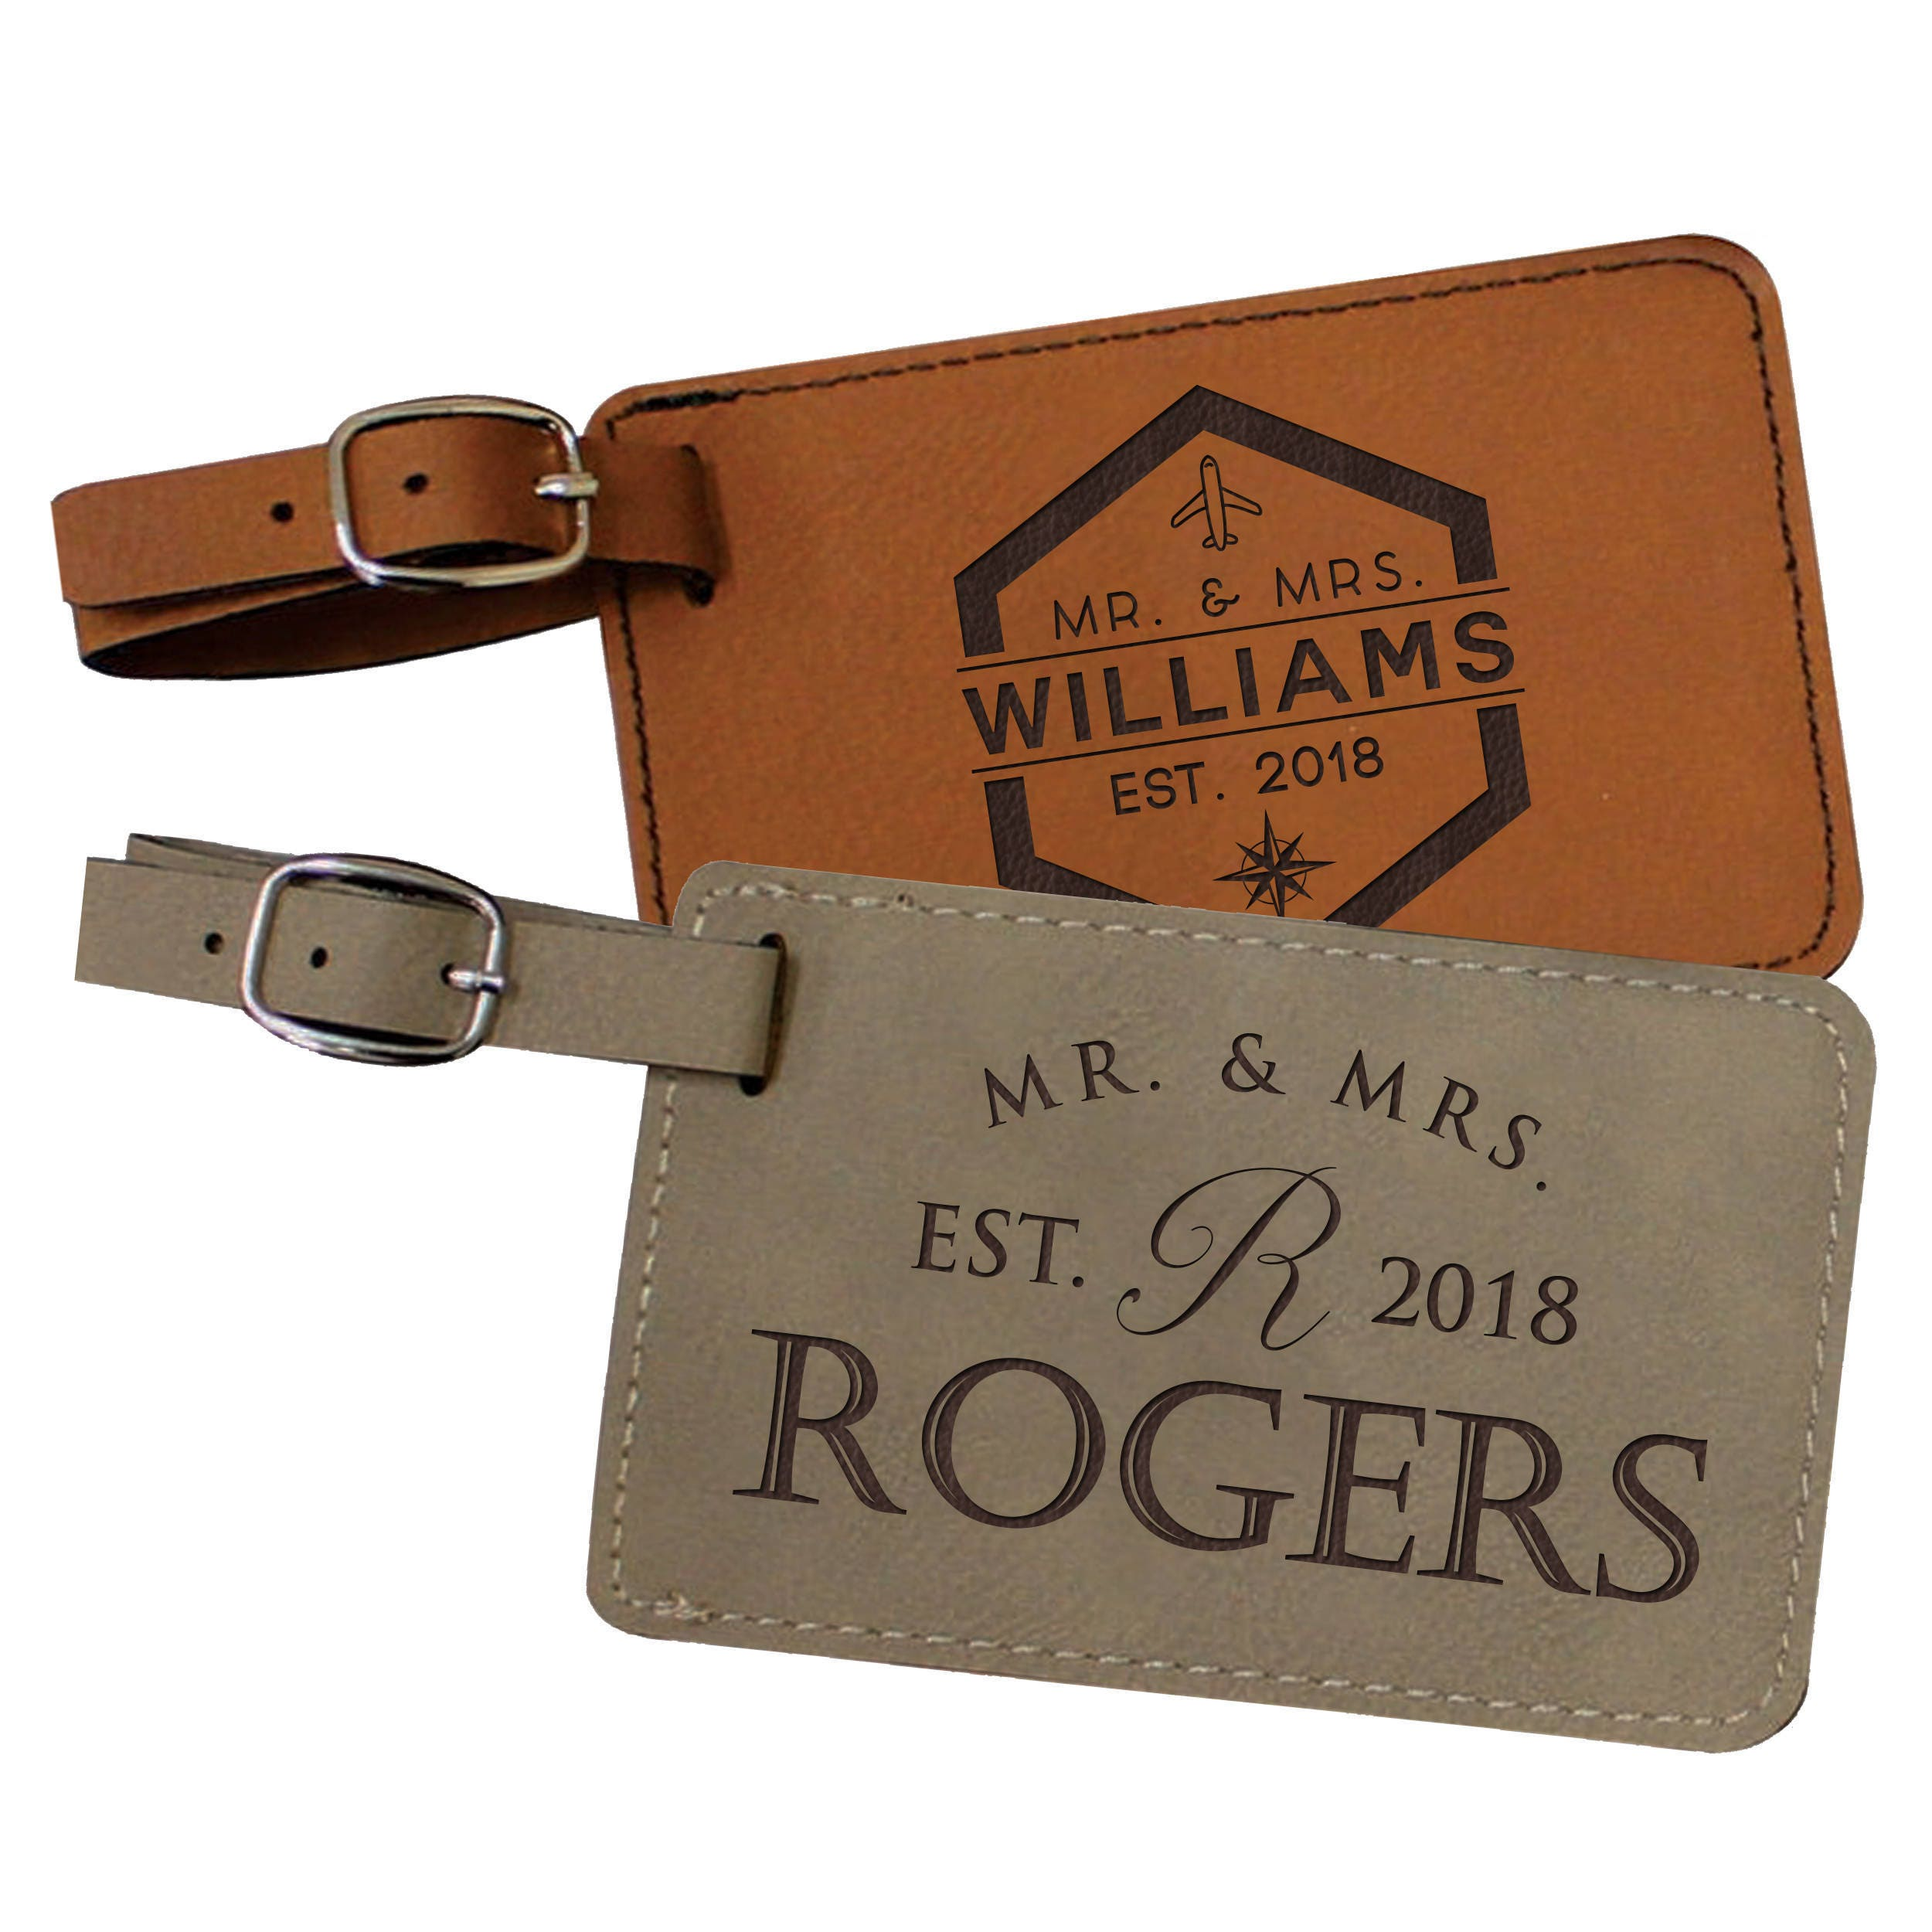 15120e4fe748 Custom Luggage Tag, Personalized Leather Luggage Tag, Luggage Tags  Personalized, Monogram Luggage Tag, Engraved Luggage Tag, Business Gift